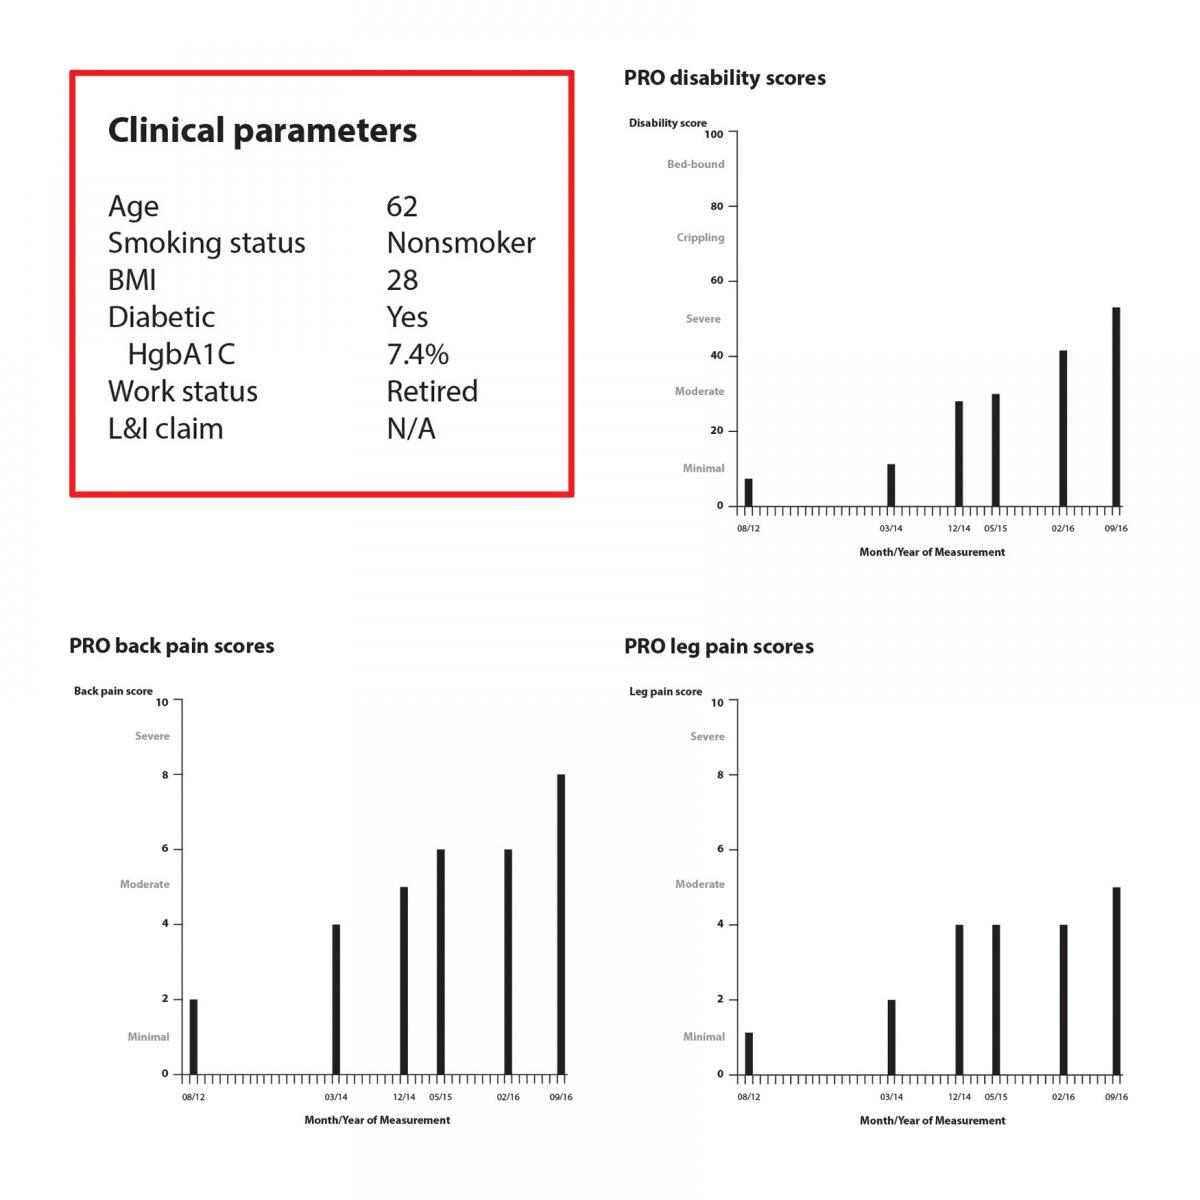 Graphic showing a patient's clinical parameters such as age, smoking status, etc. alongside bar charts showing their disability, back pain, and leg pain scores.